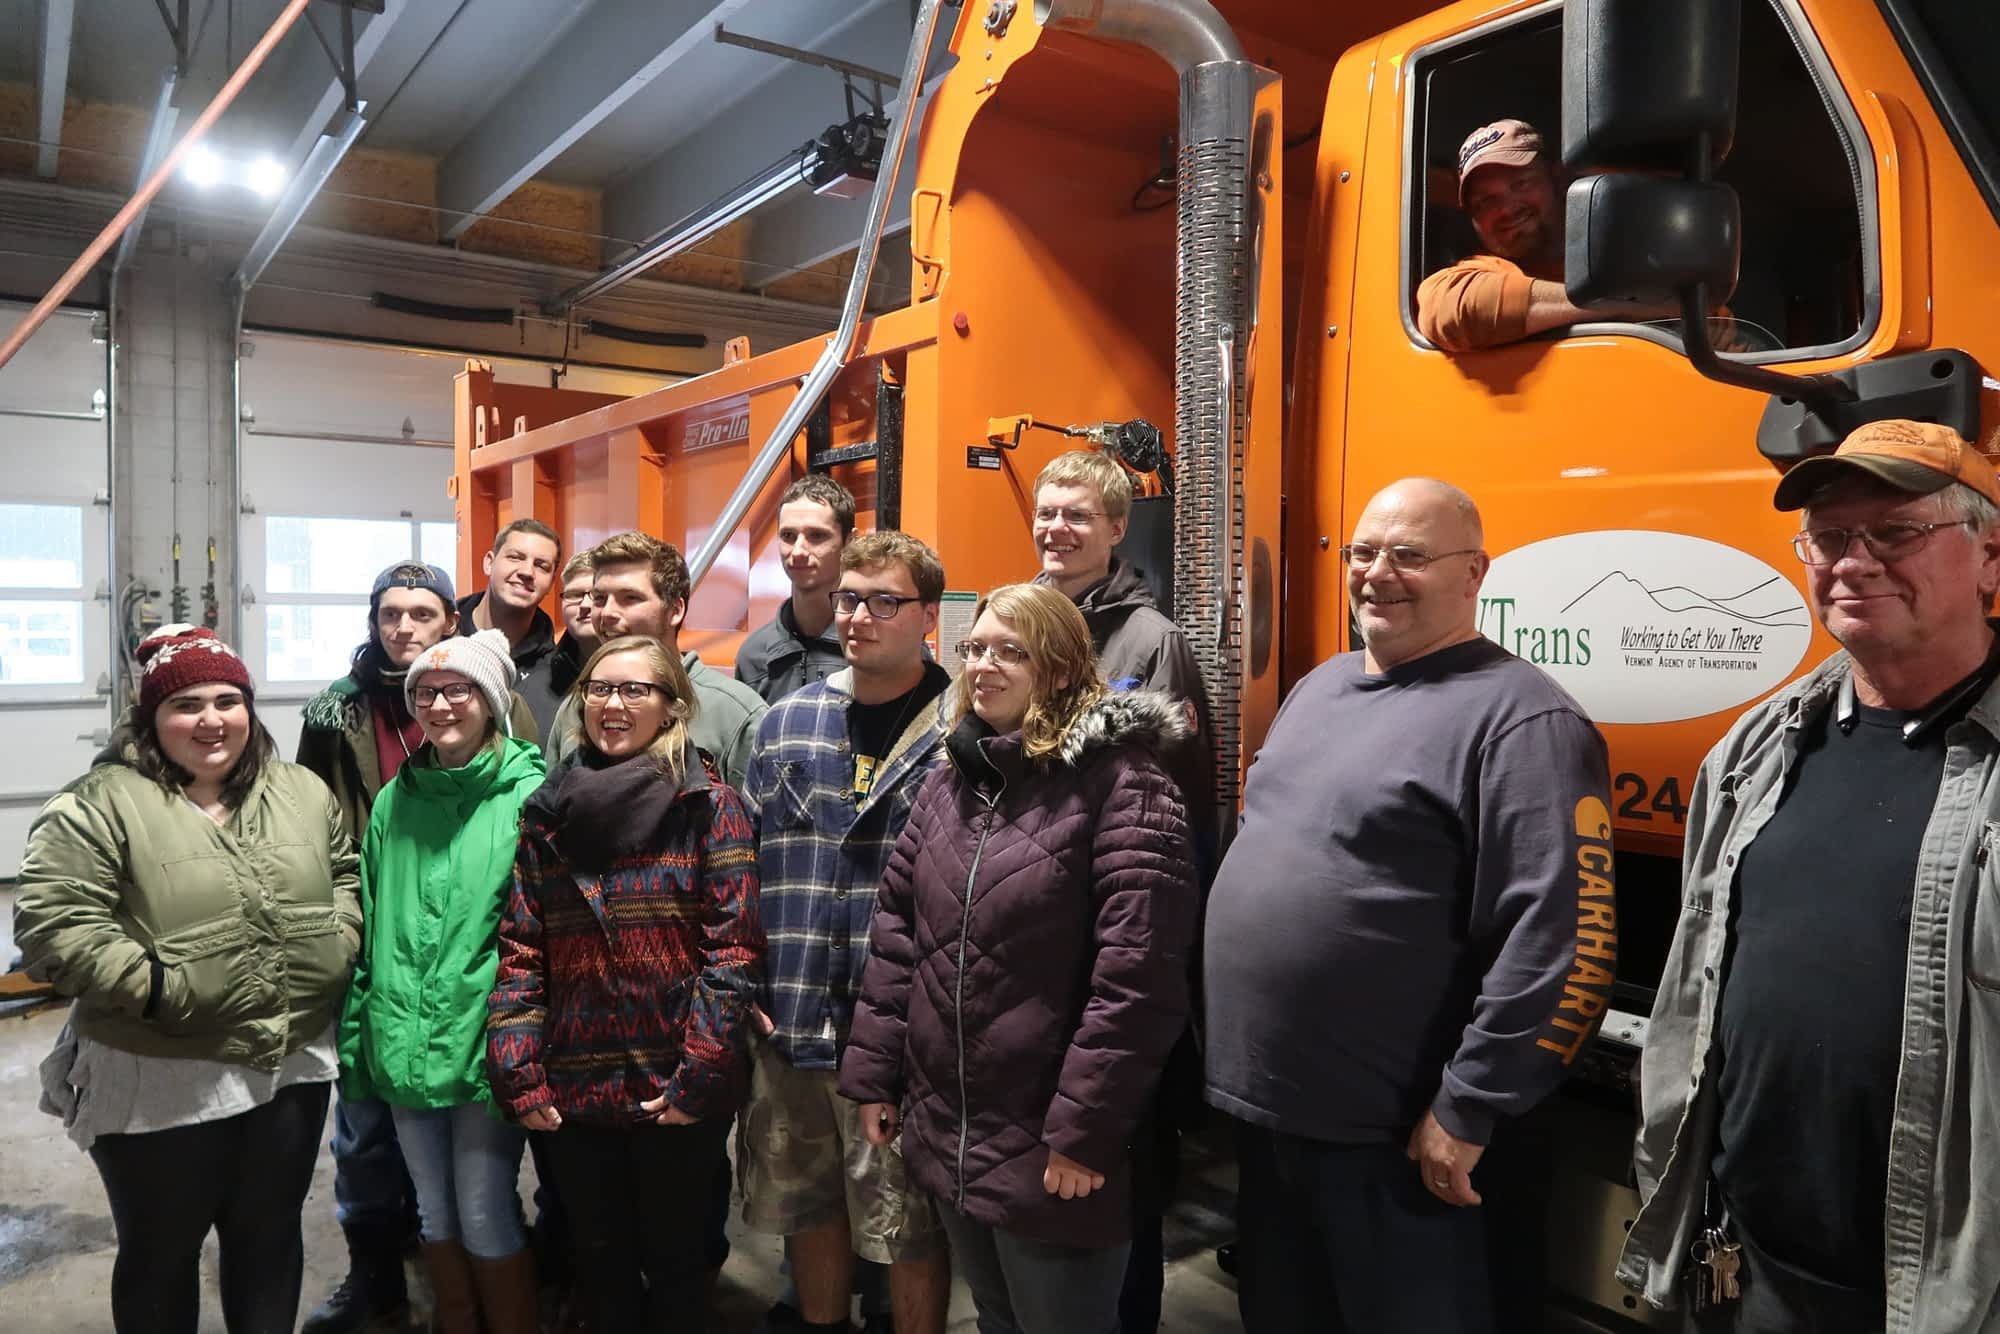 Agency of Transportation and Northern Vermont University Celebrate 15 Years of Partnership